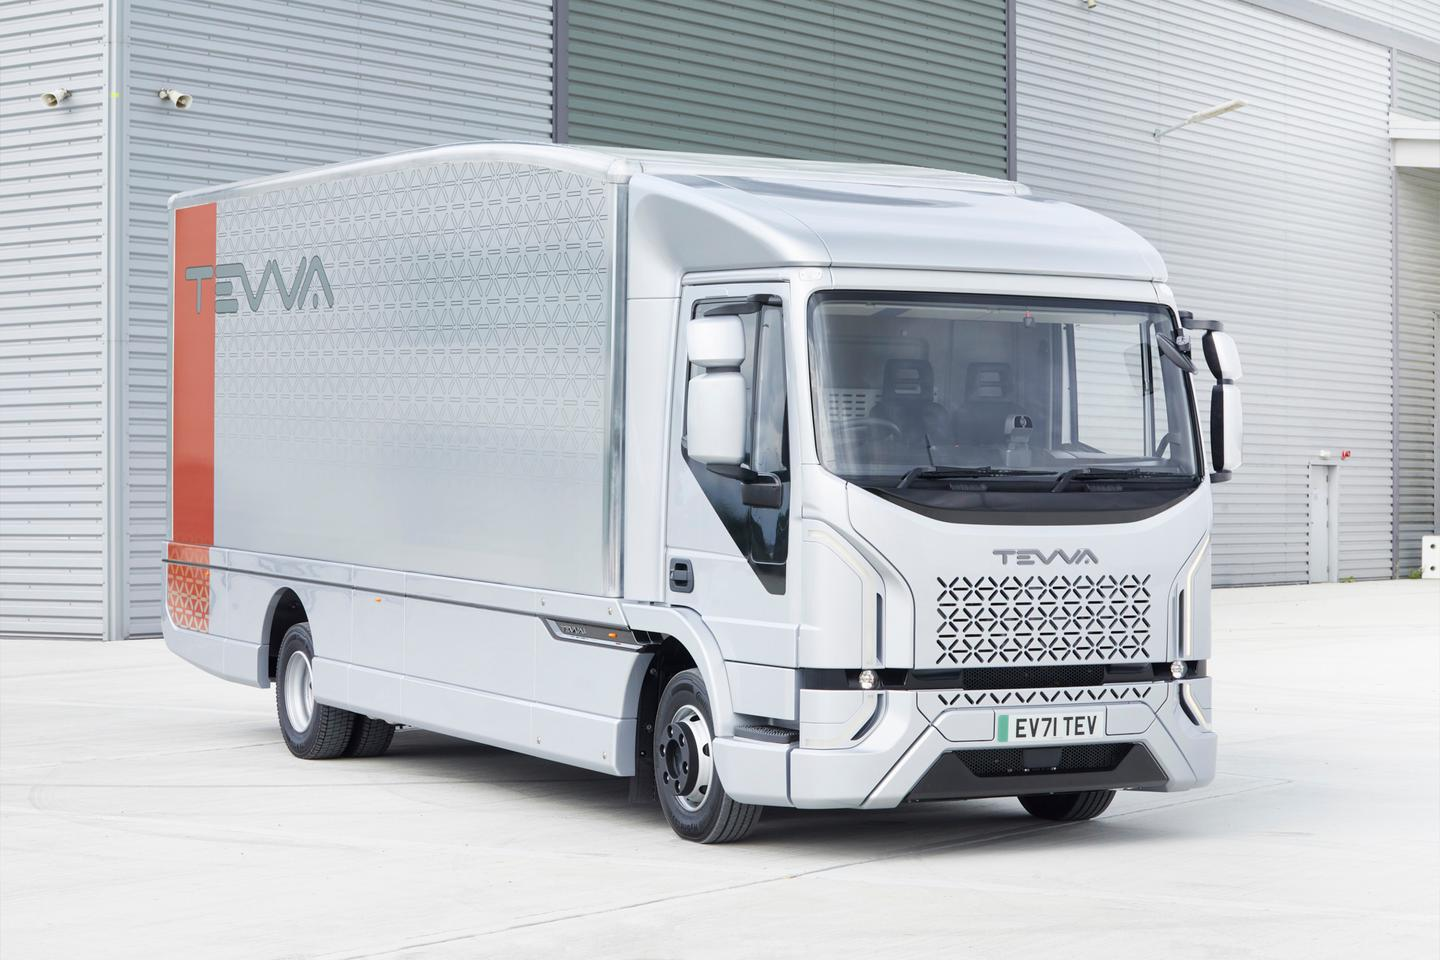 The Tevva Truck is a 7.5-tonne battery electric freight hauler that can be had with a hydrogen fuel cell range extender